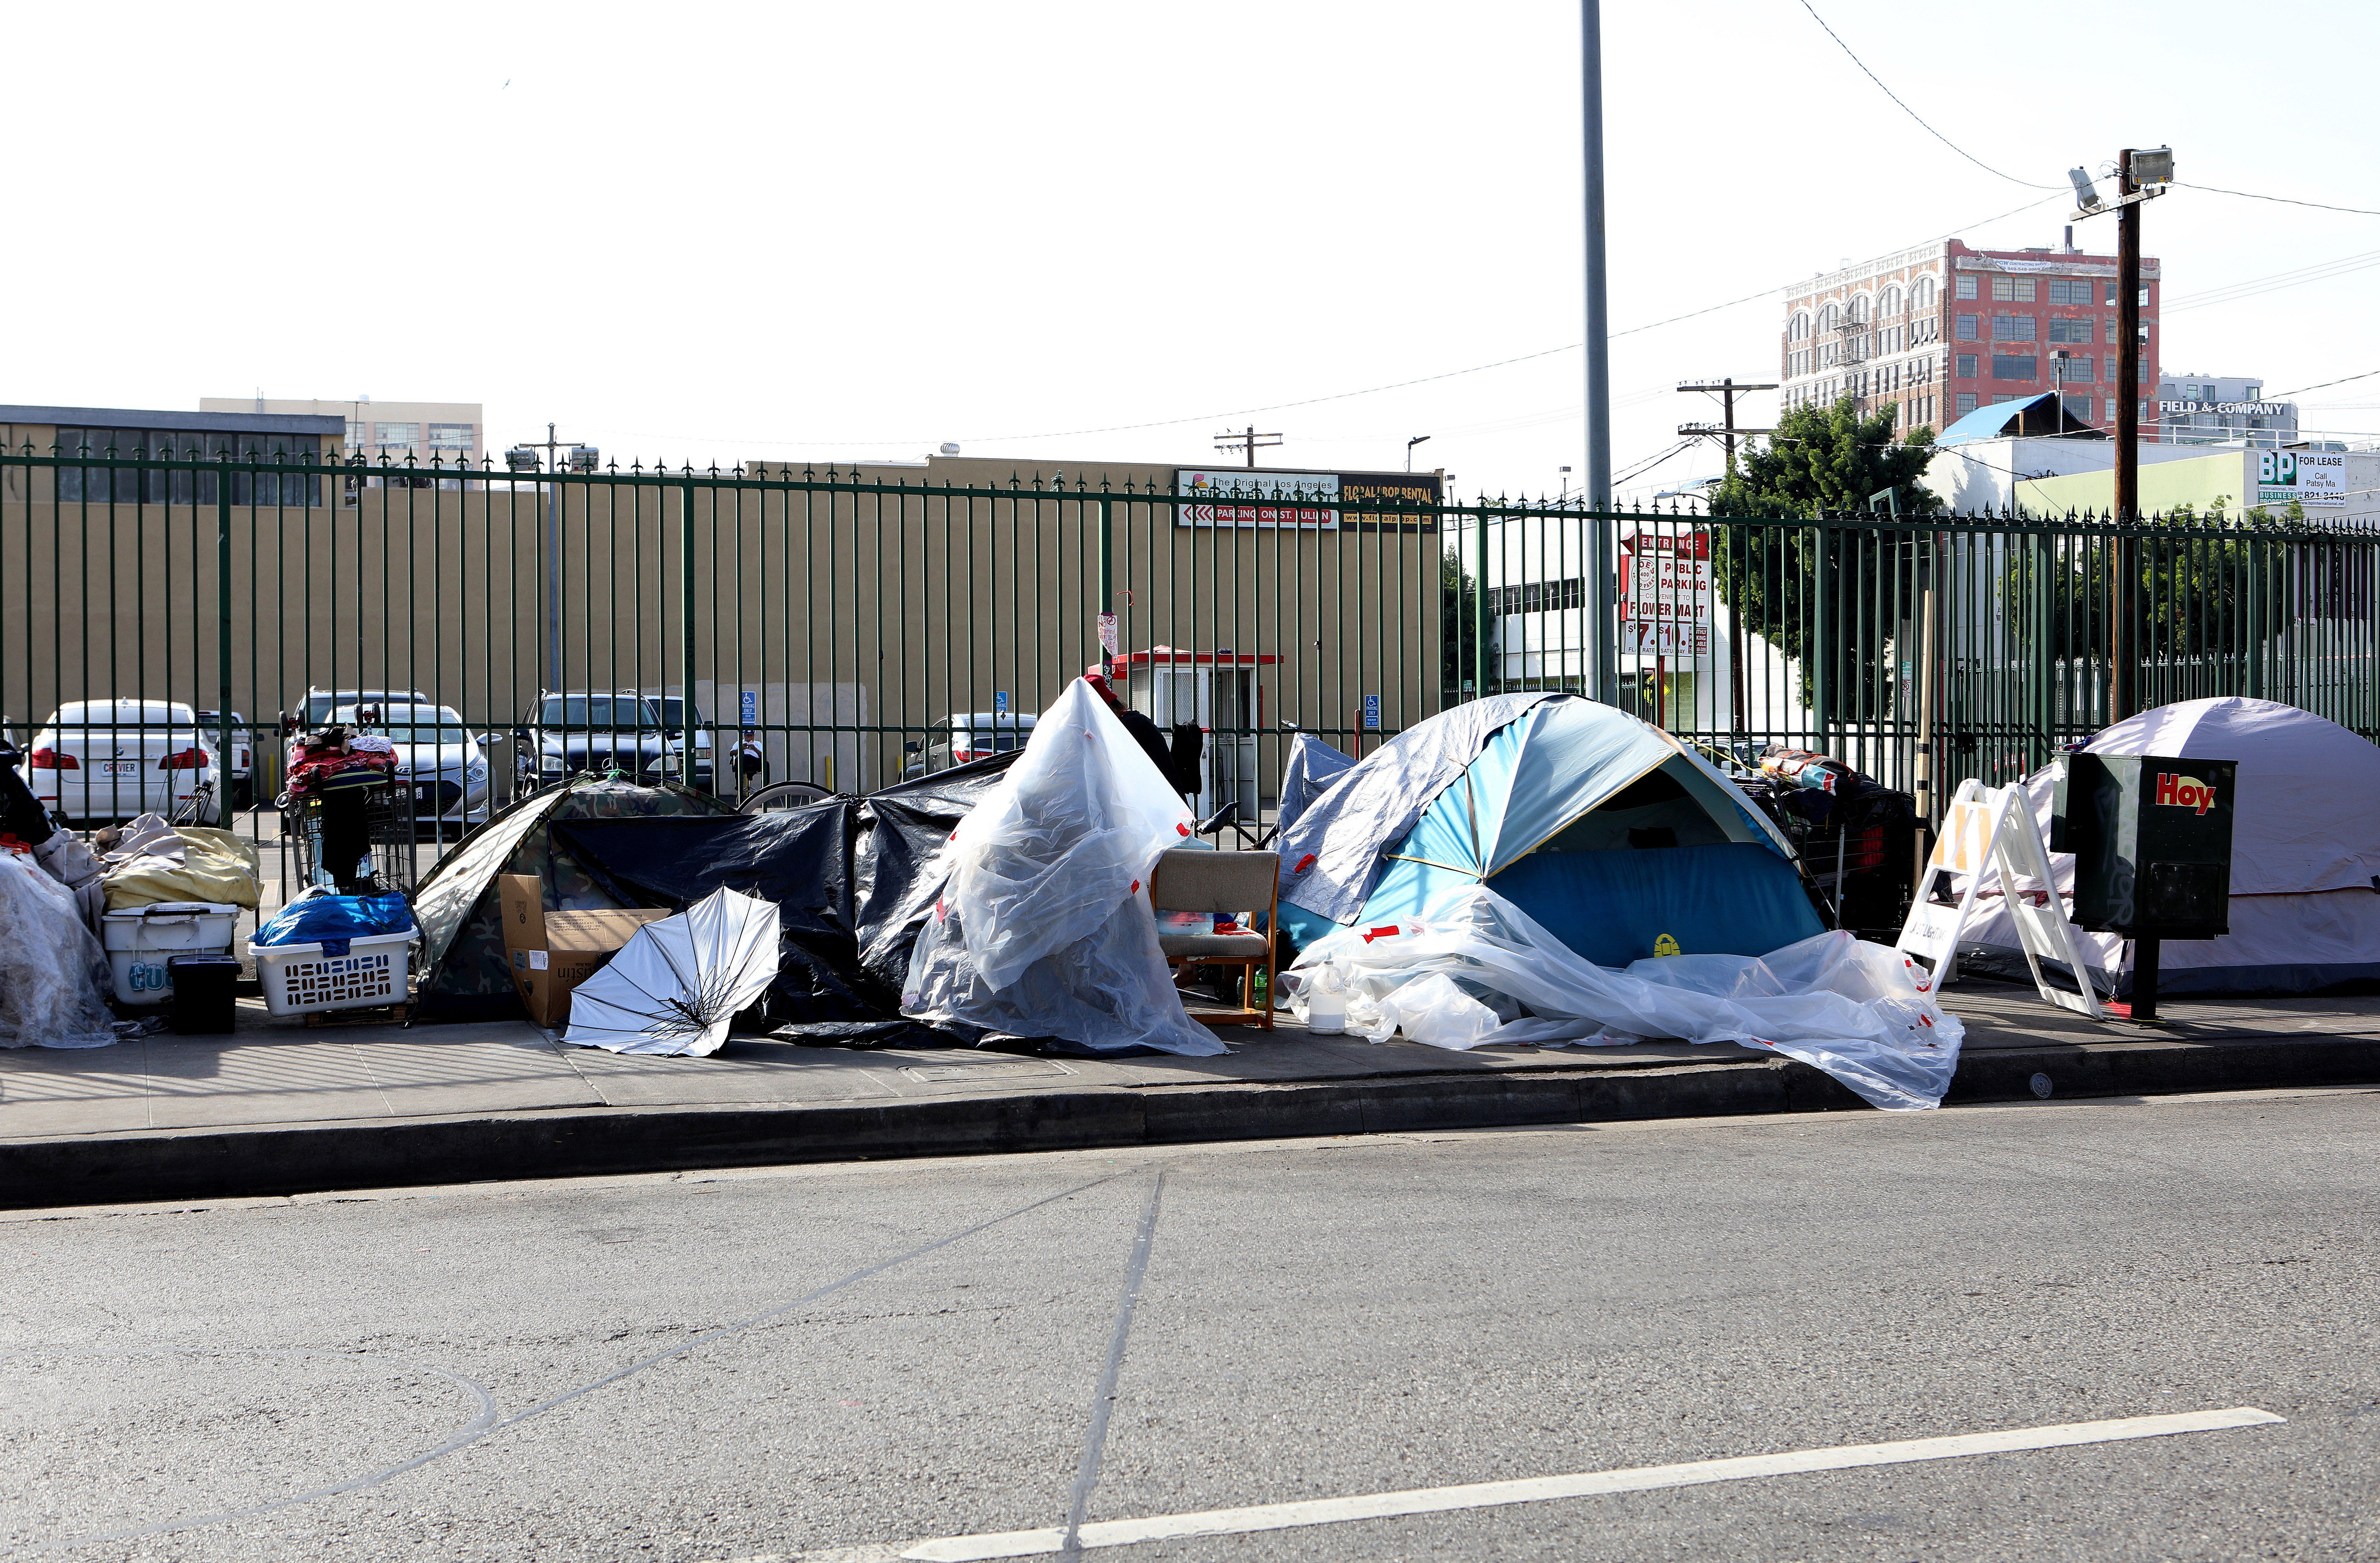 L.A.'s homeless population has grown by 75% in 6 years - Axios